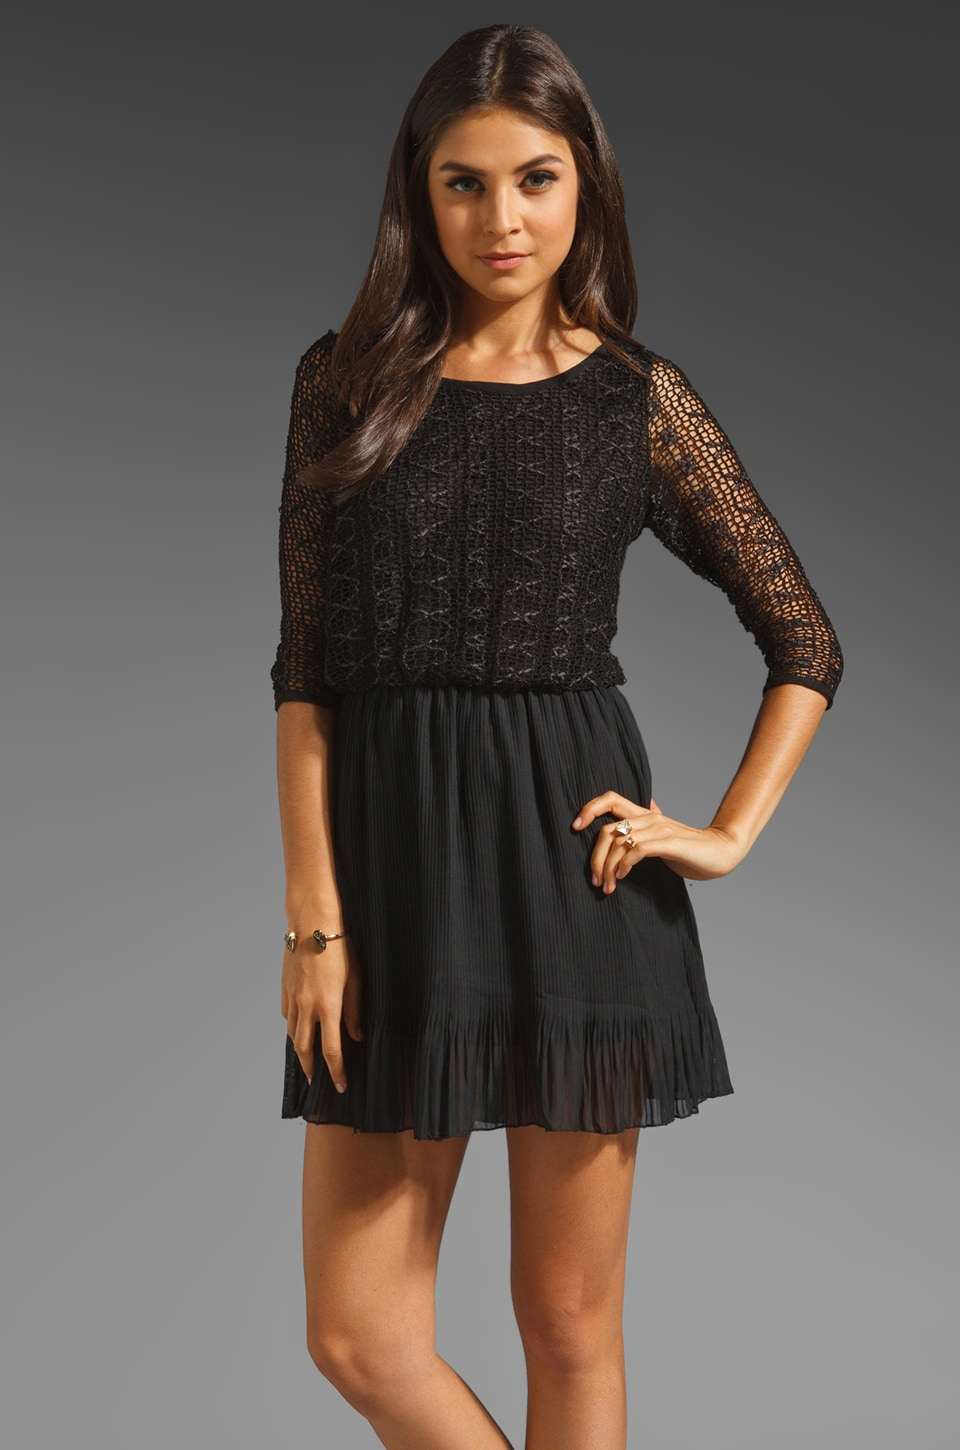 T-Bags LosAngeles Lace Mini Dress in Black